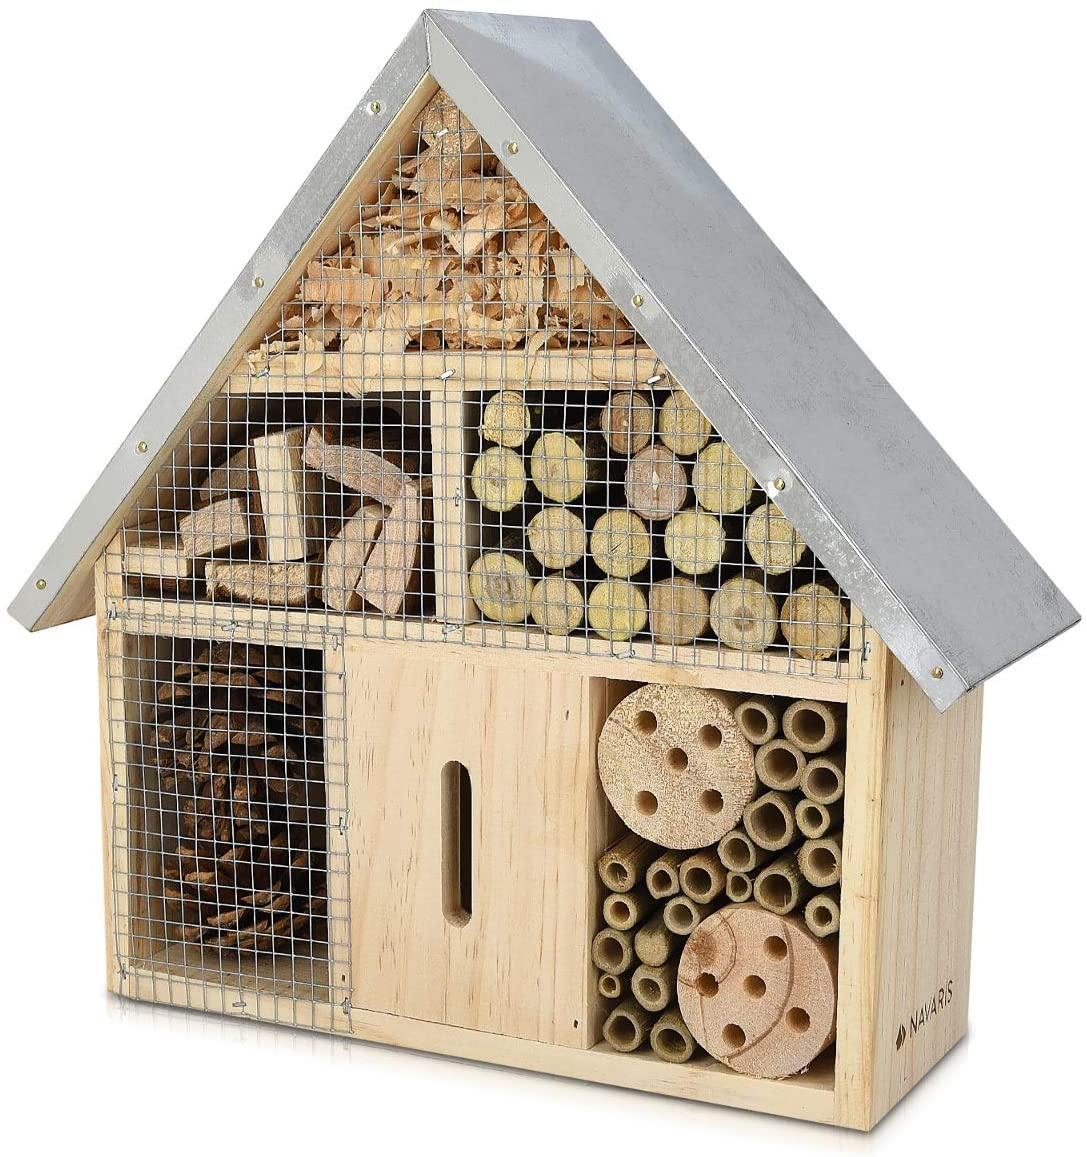 Navaris M Wooden Insect Hotel - 10 x 11 x 3 Inches - Natural Wood Insect Home Bamboo Nesting Habitat - Garden Shelter for Bees, Butterflies, Ladybugs